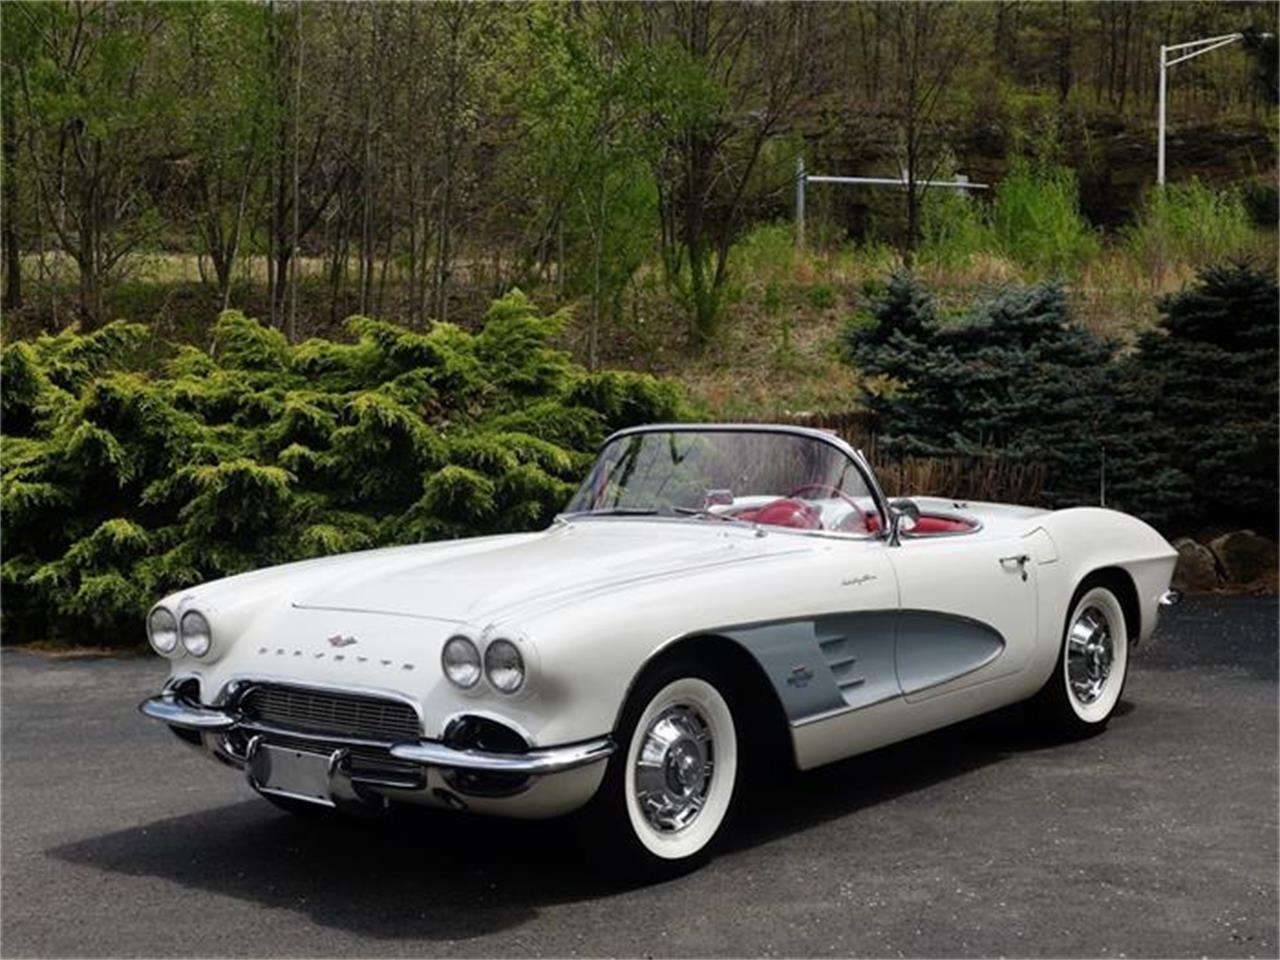 Large Picture of '61 Chevrolet Corvette located in Pennsylvania - $99,500.00 - FBYK